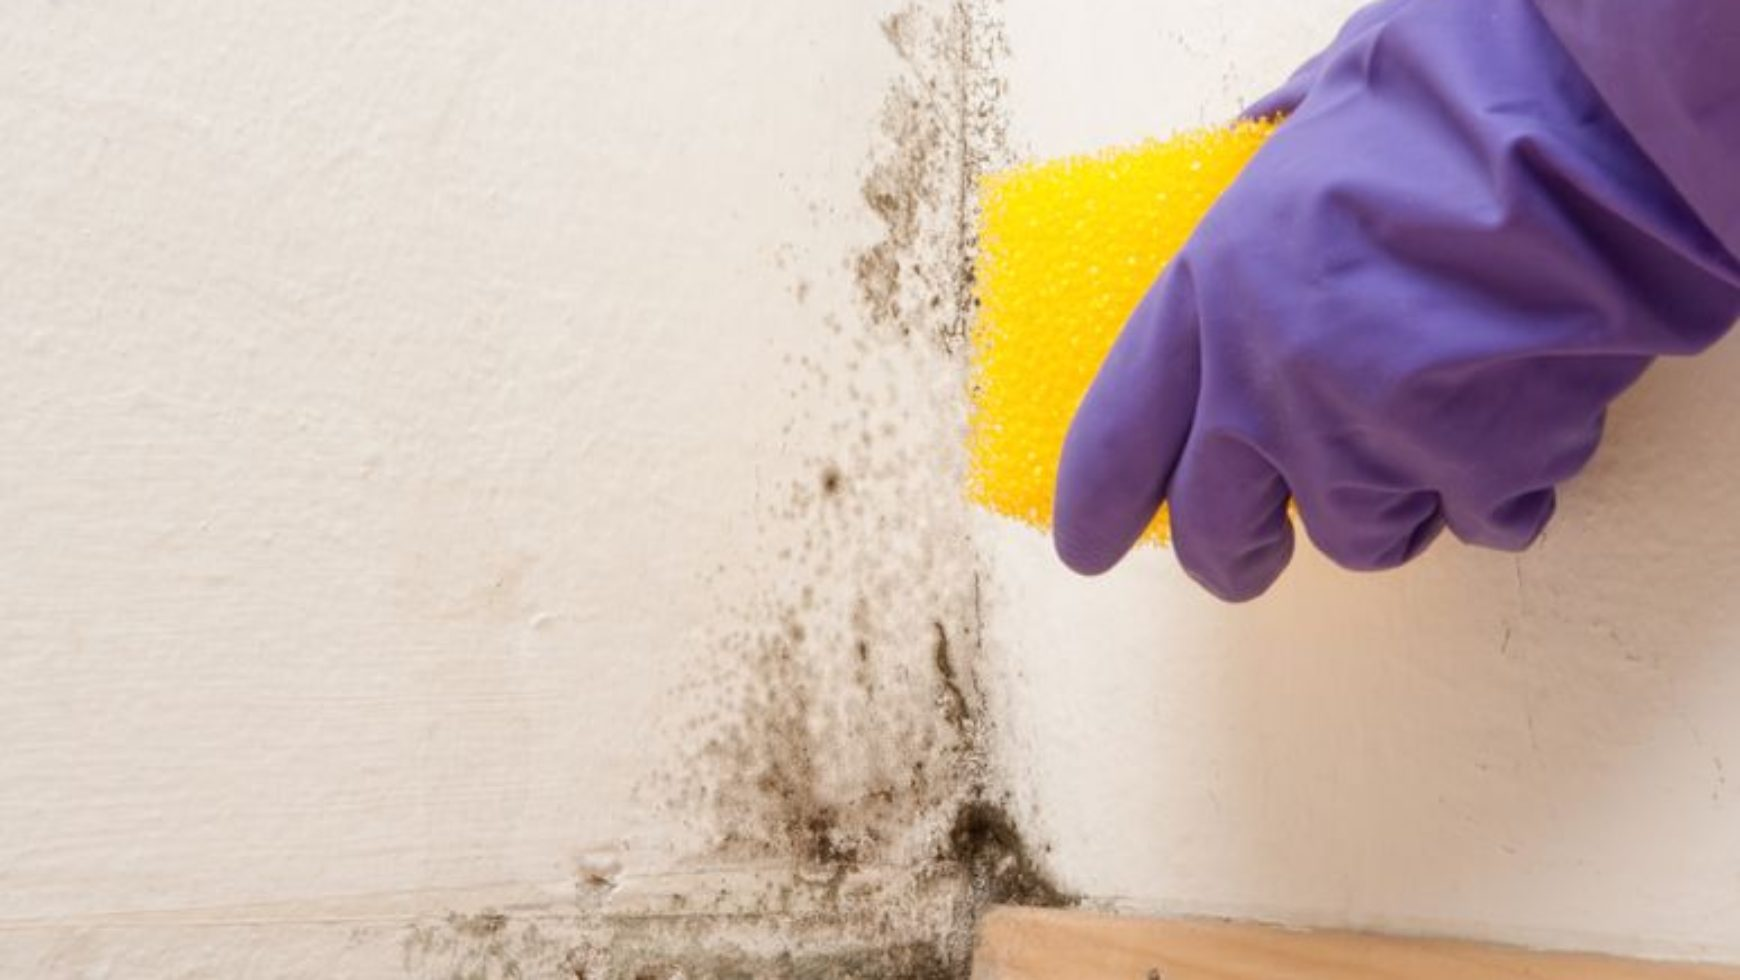 Annual Mold Inspections: Scam or Savior?